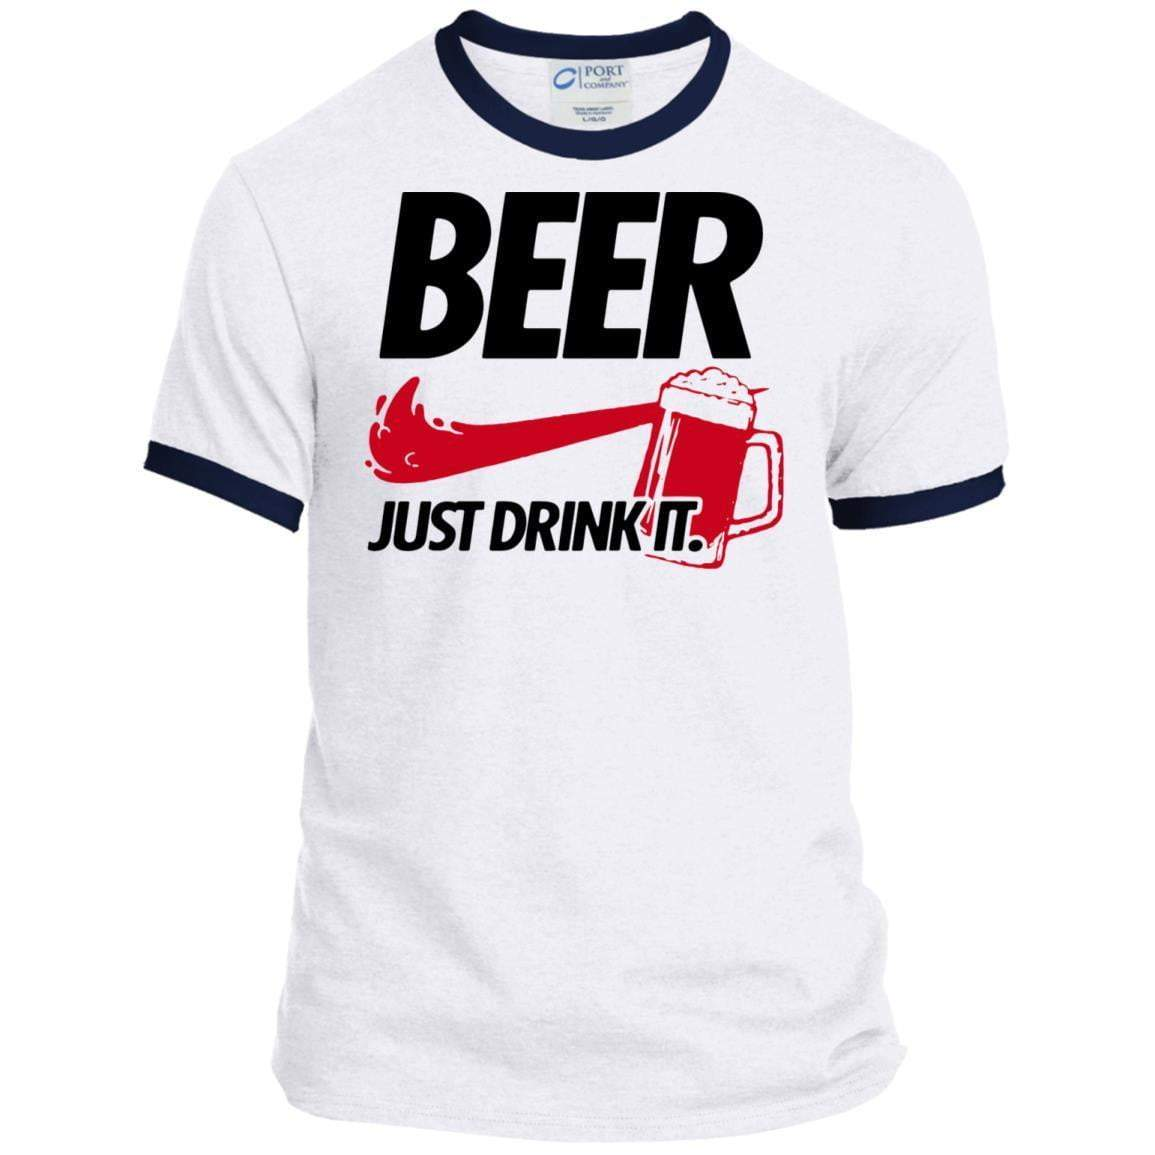 BEER JUST DRINK IT 4th of July Ringer T